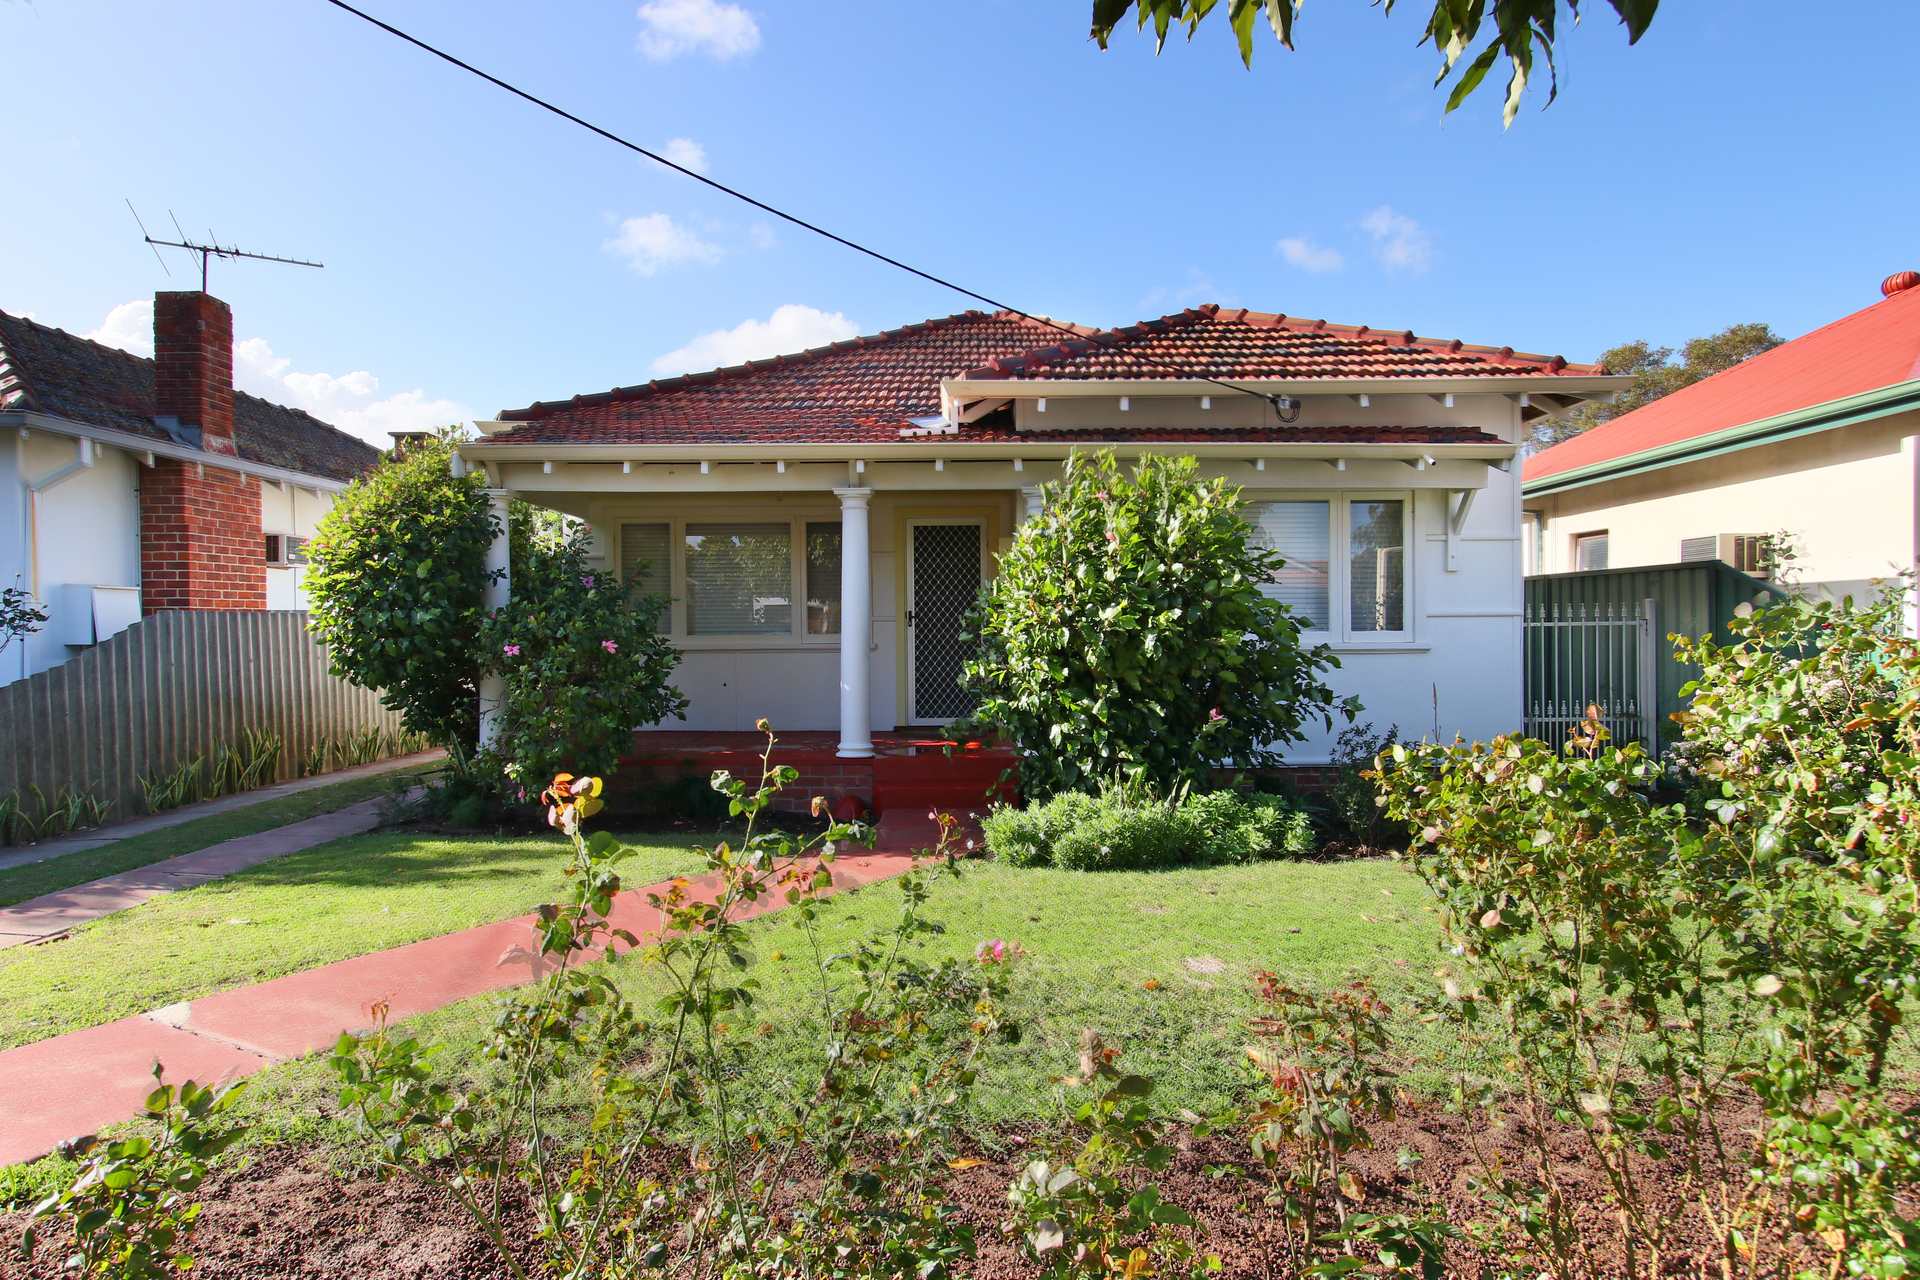 151 Knutsford Avenue Rivervale